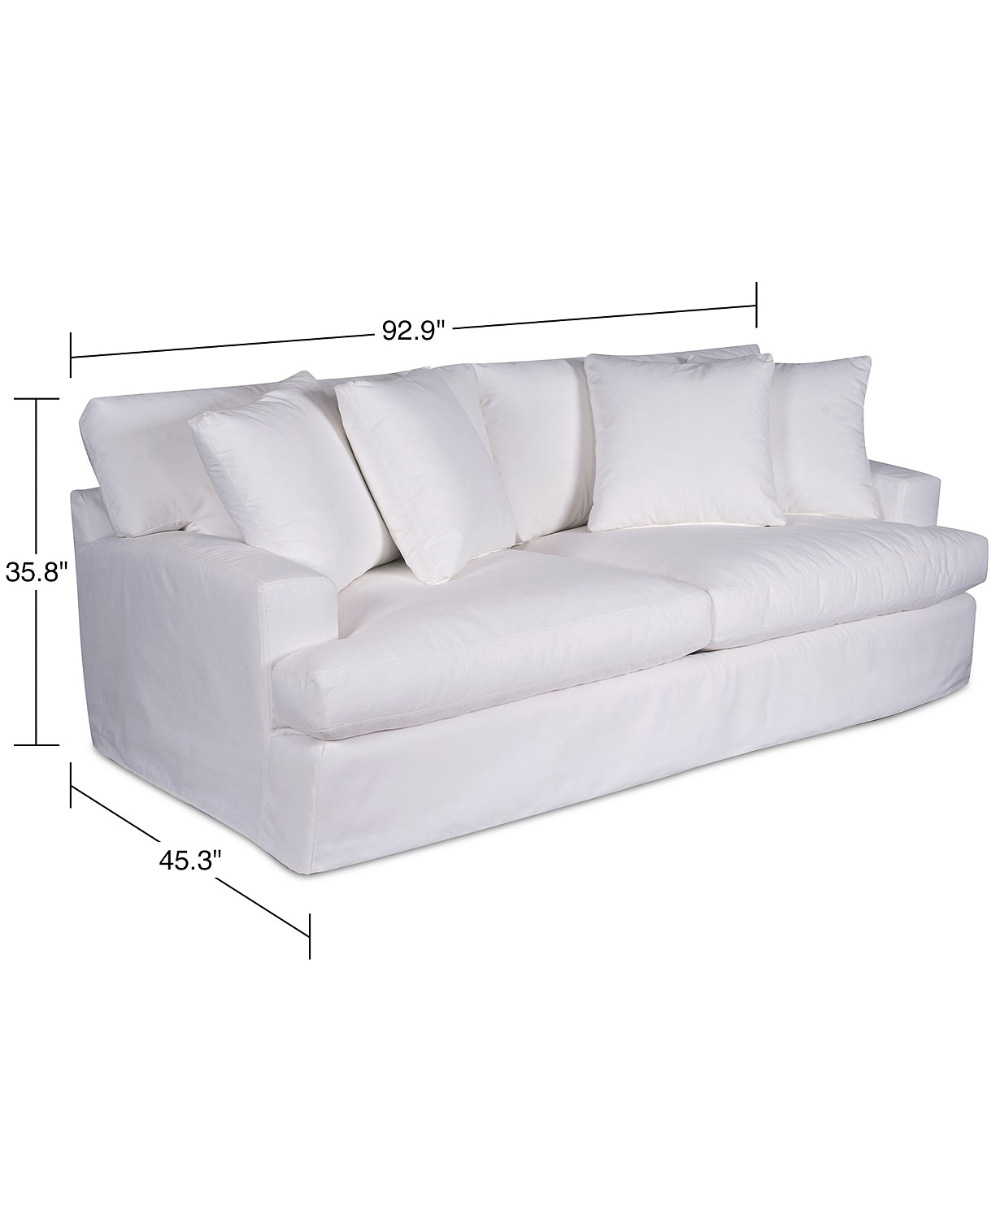 Brenalee 93 Performance Fabric Slipcover Sofa Pearl In 2020 Furniture Sofa Slipcovers